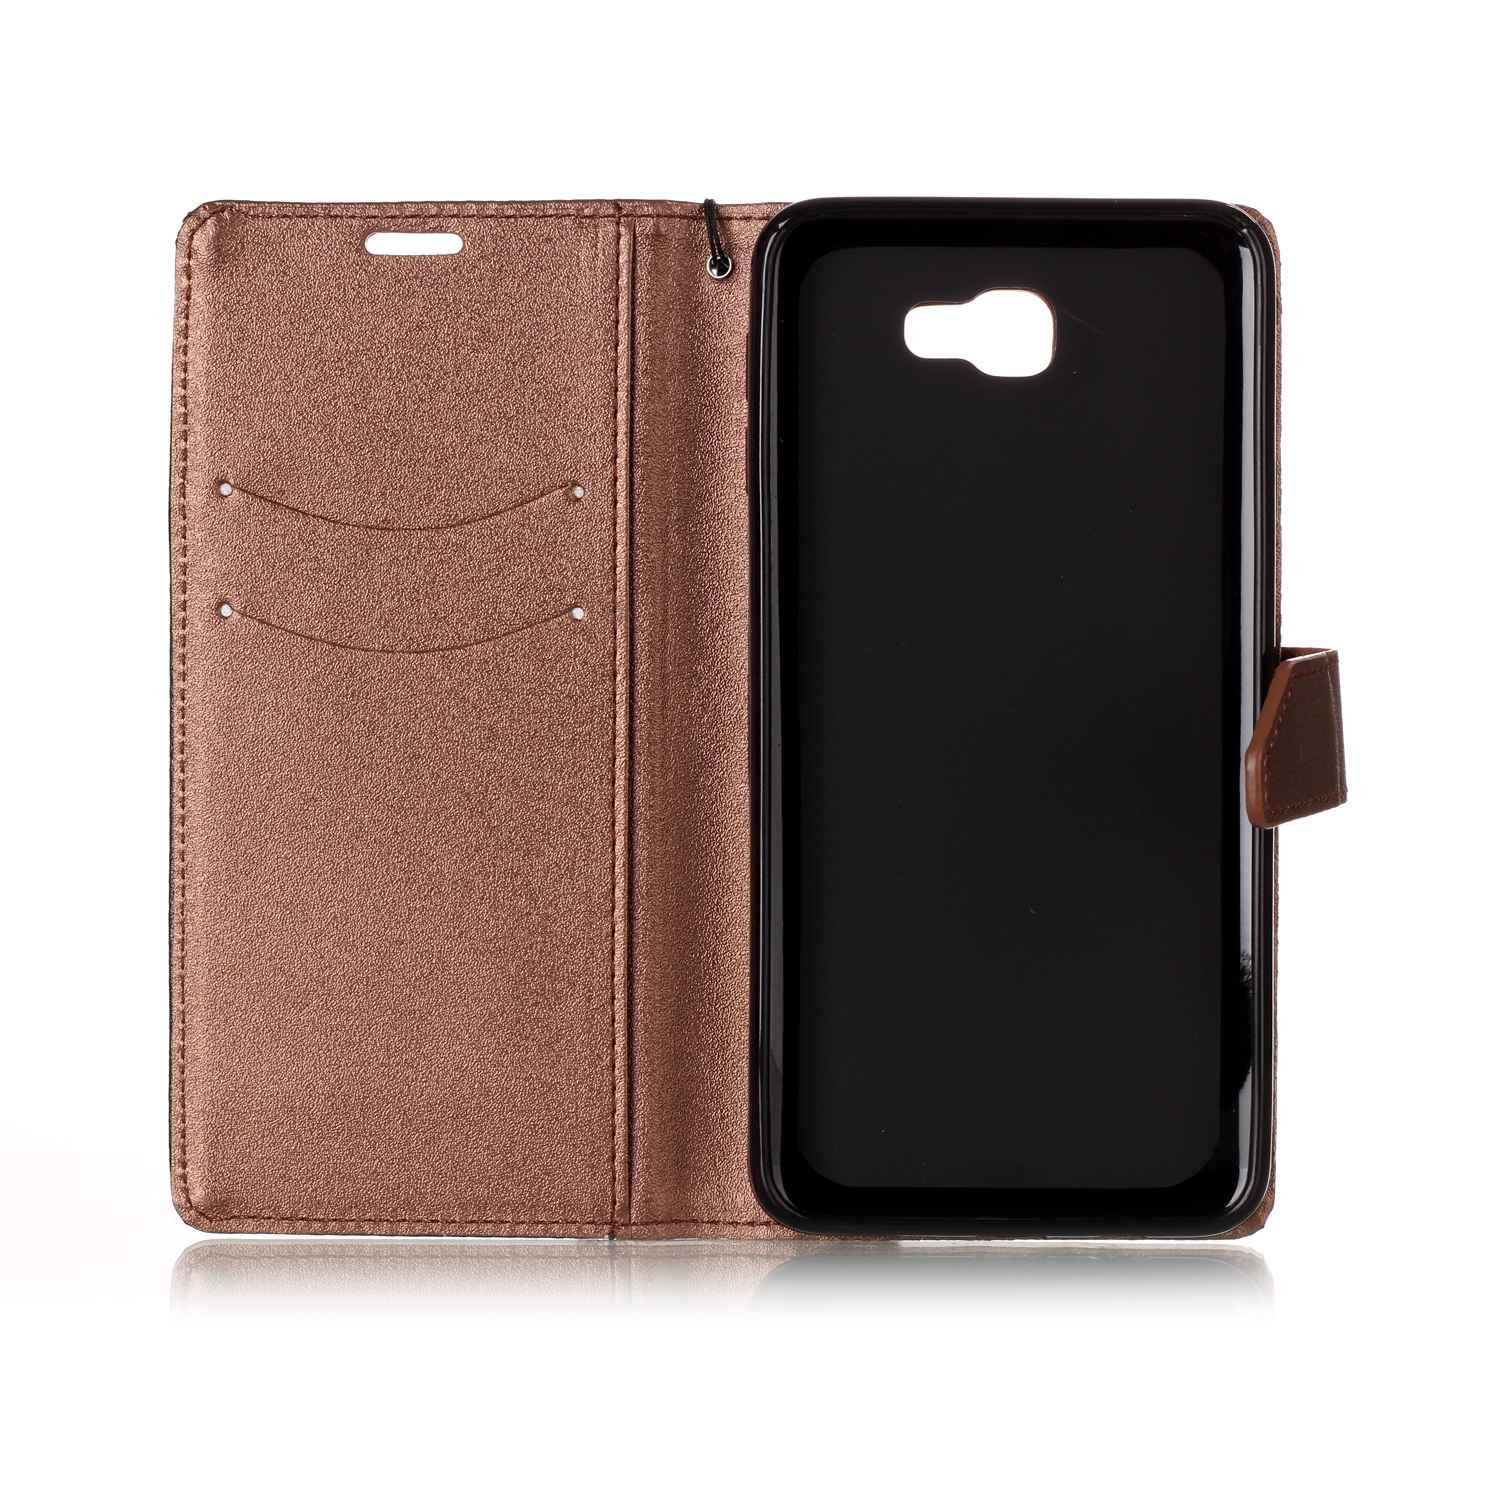 Galaxy J7 Prime Case,Galaxy J7 Prime Cover,ikasus Hit Color Collision PU Leather Fold Wallet Pouch Case Premium Leather Wallet Flip Stand Credit Card ID Holders Case for Samsung Galaxy J7 Prime,Brown